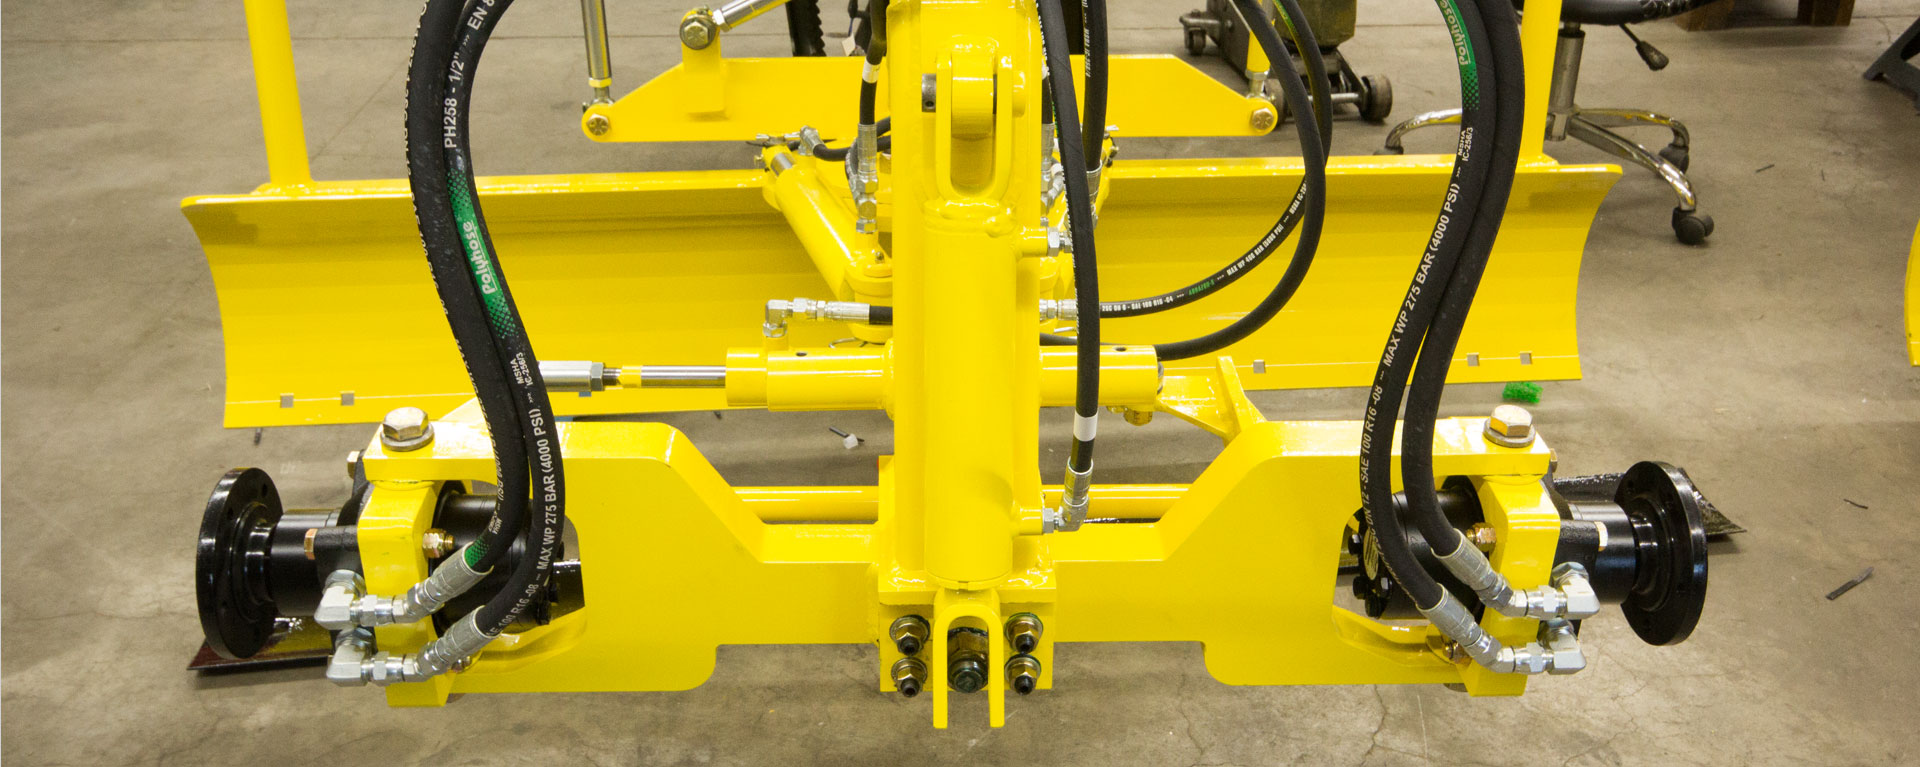 Front forks of the Laser Grader